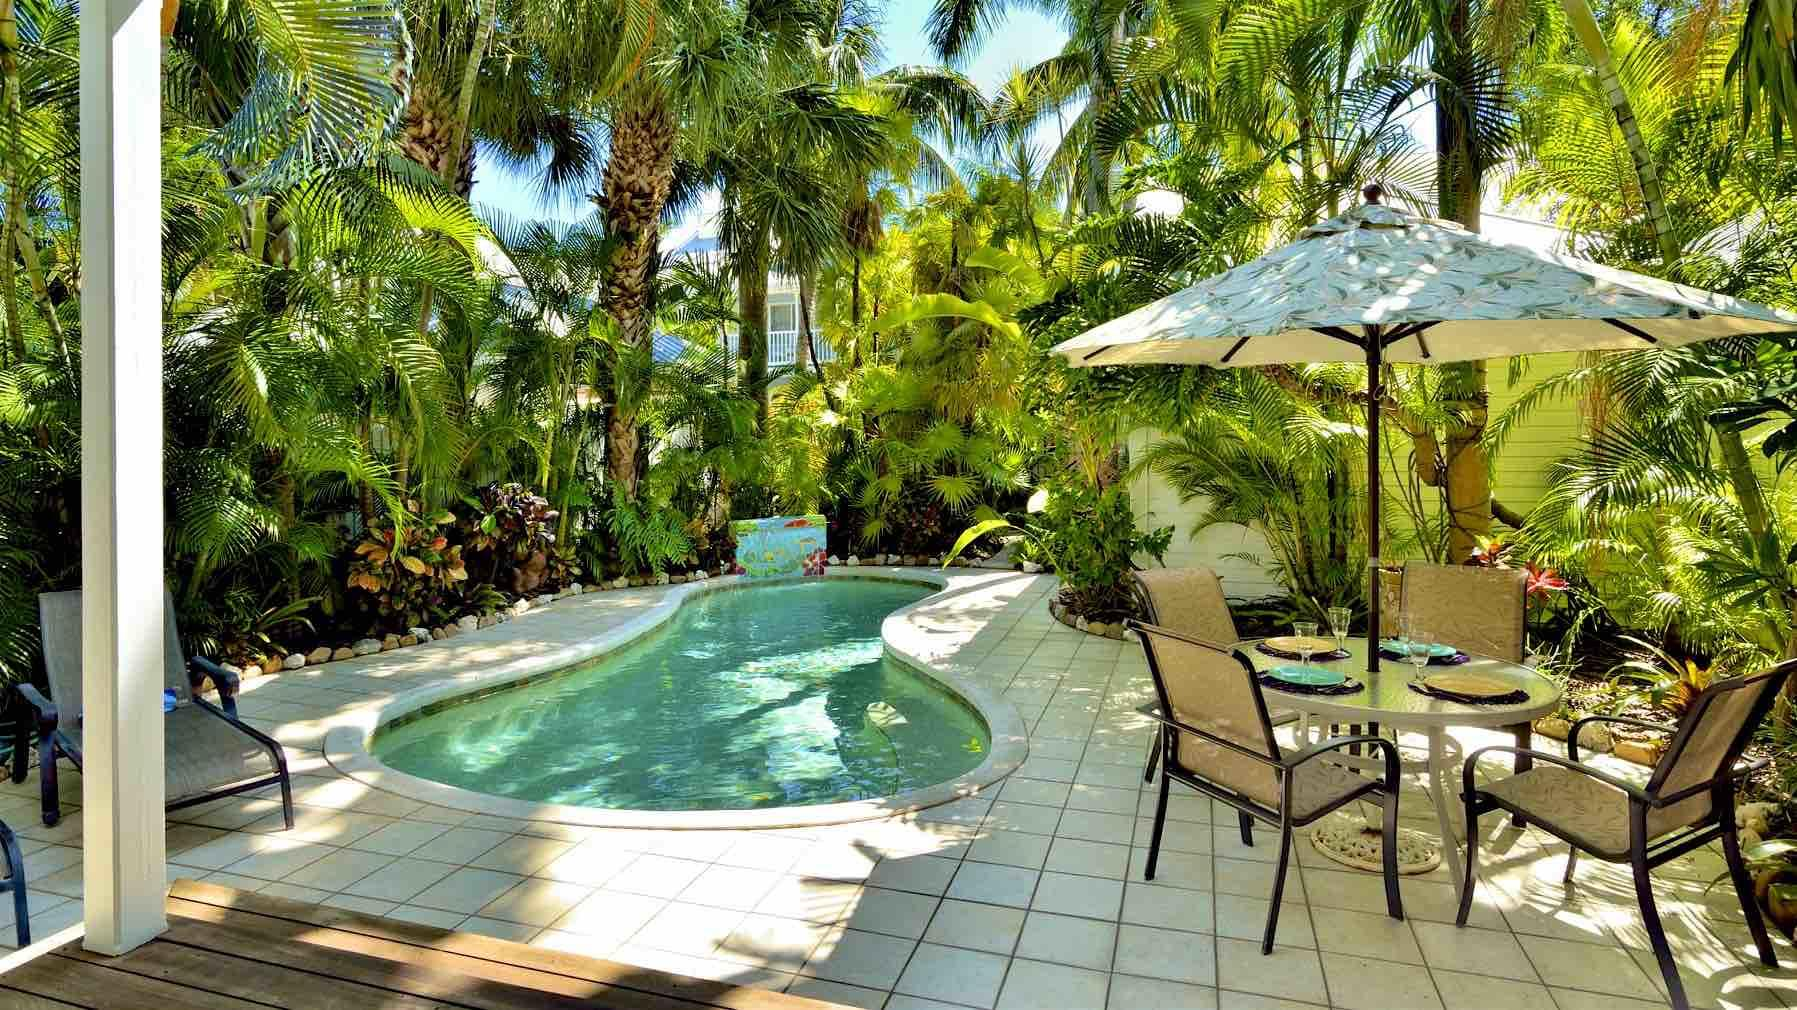 The back yard is your piece of paradise, surrounded by tropical landscaping...